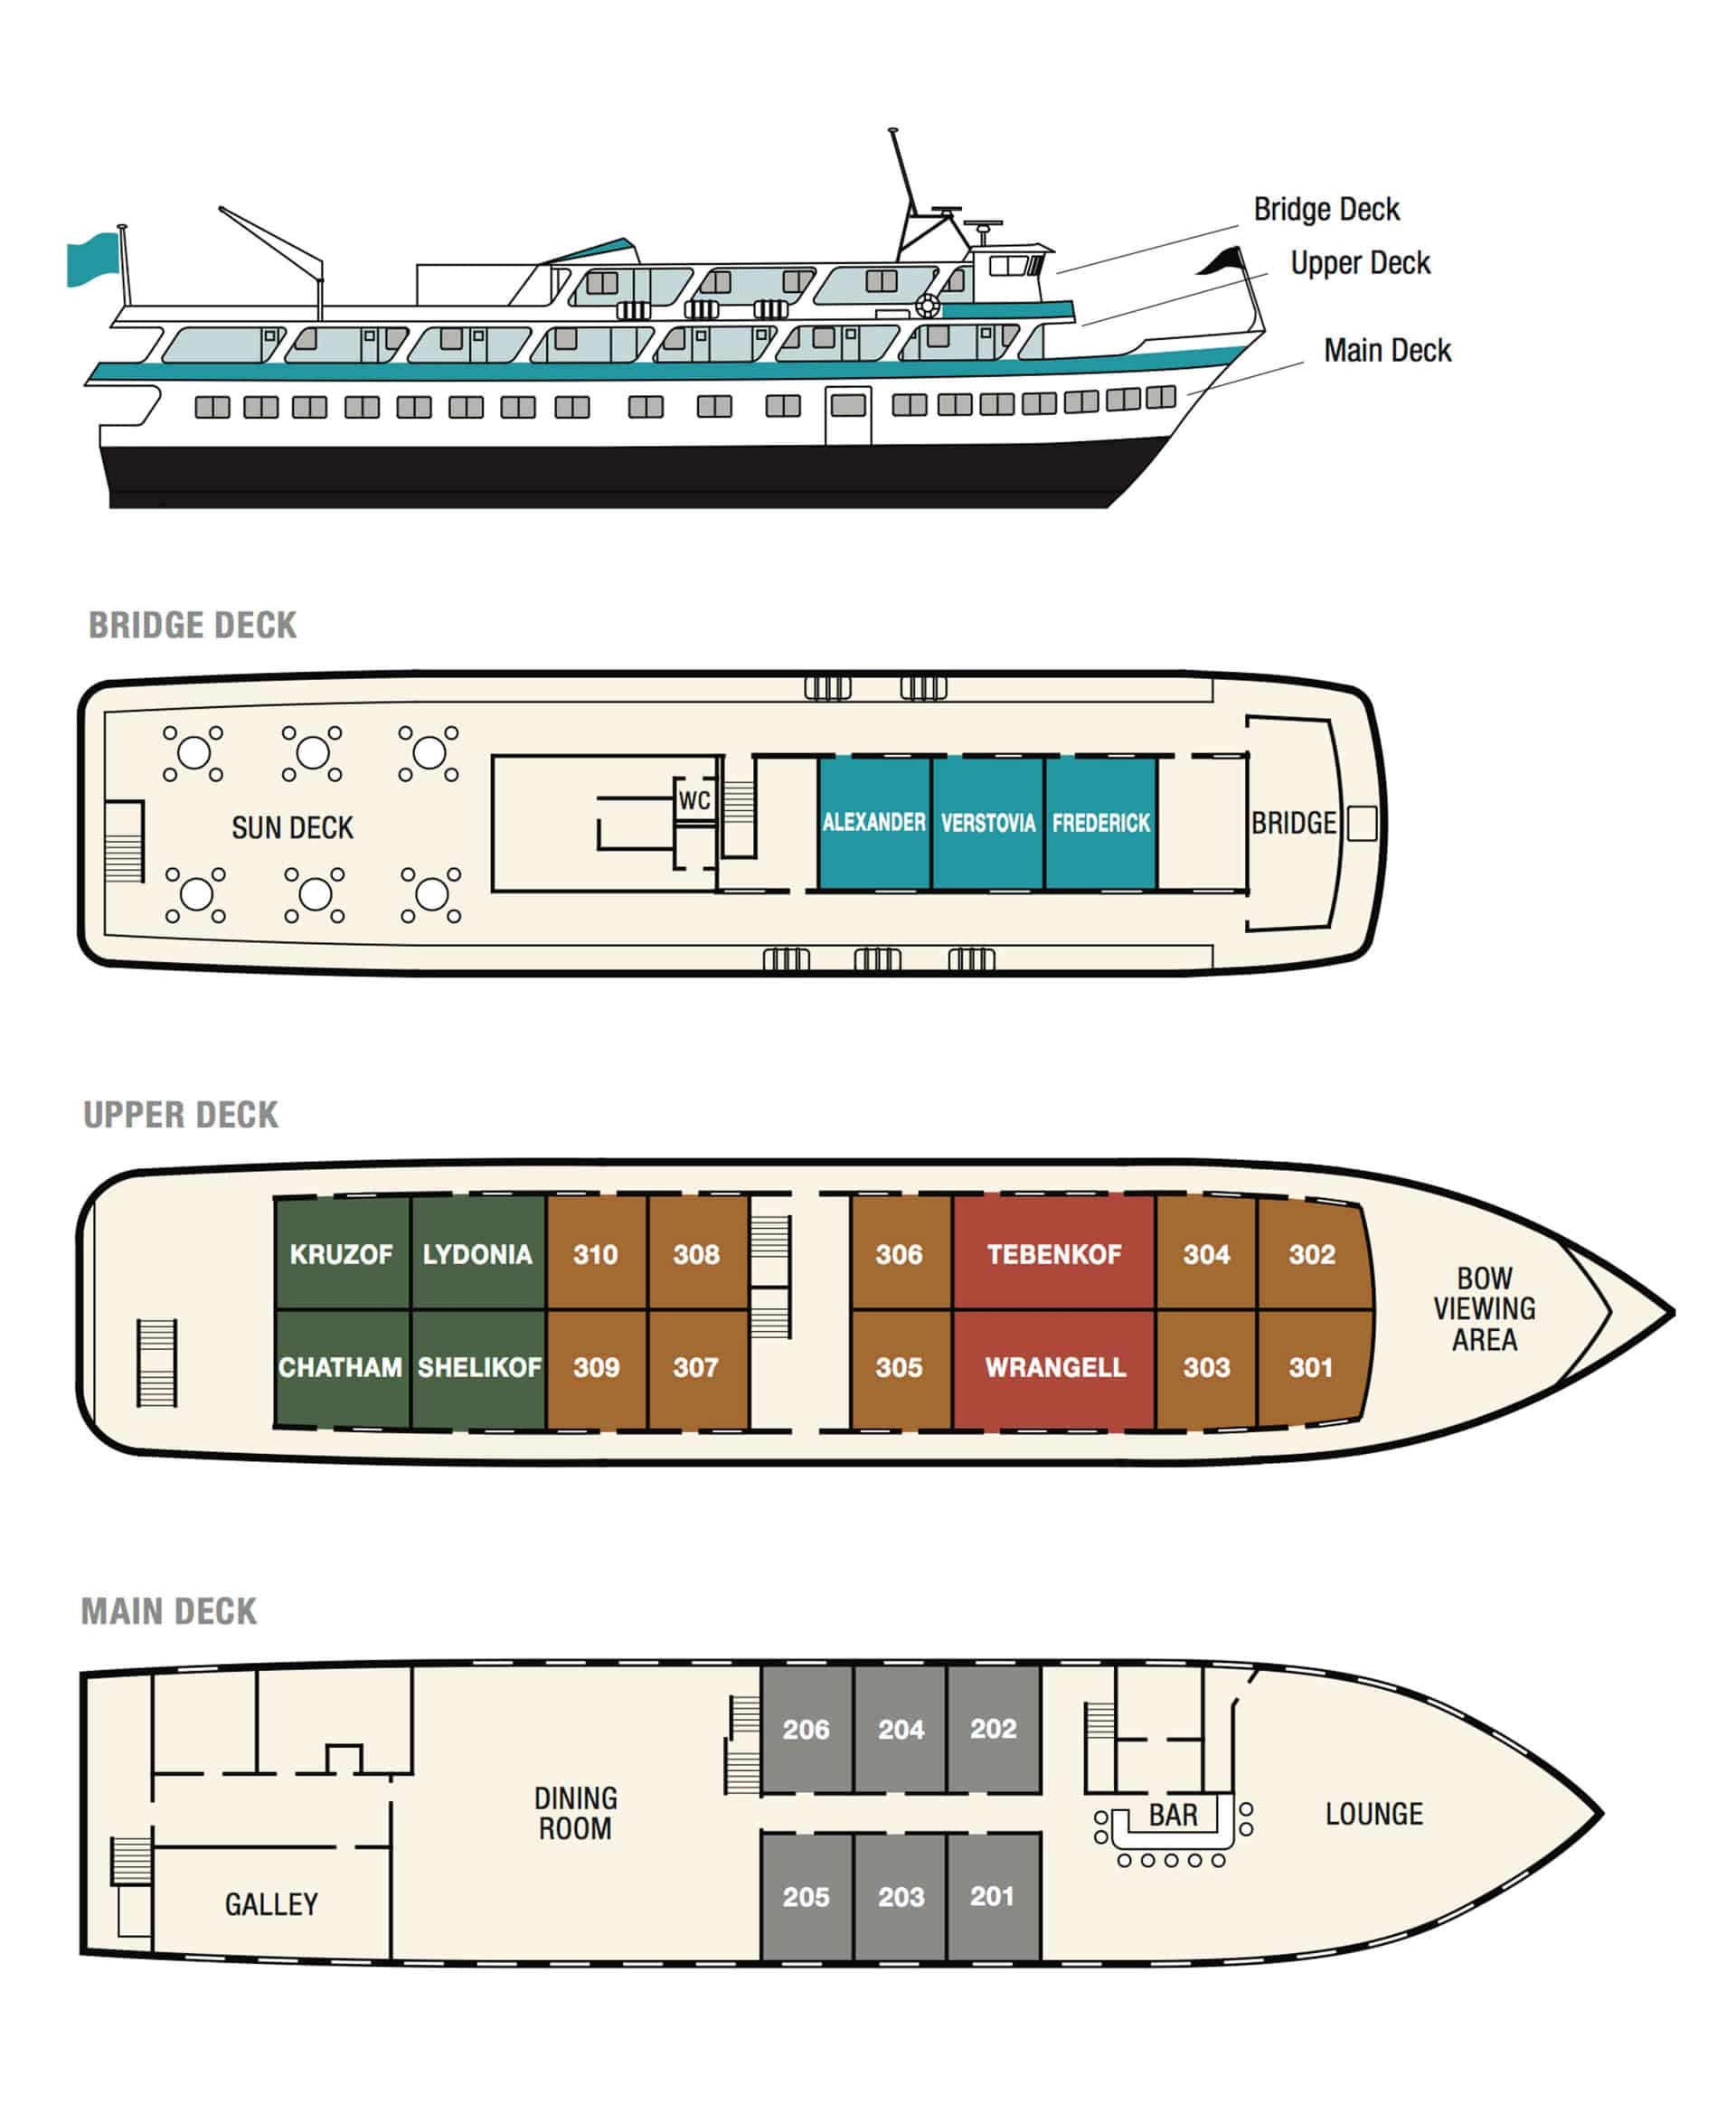 Deck plan showing 3 decks aboard Baranof Dream and cabin categories by color.